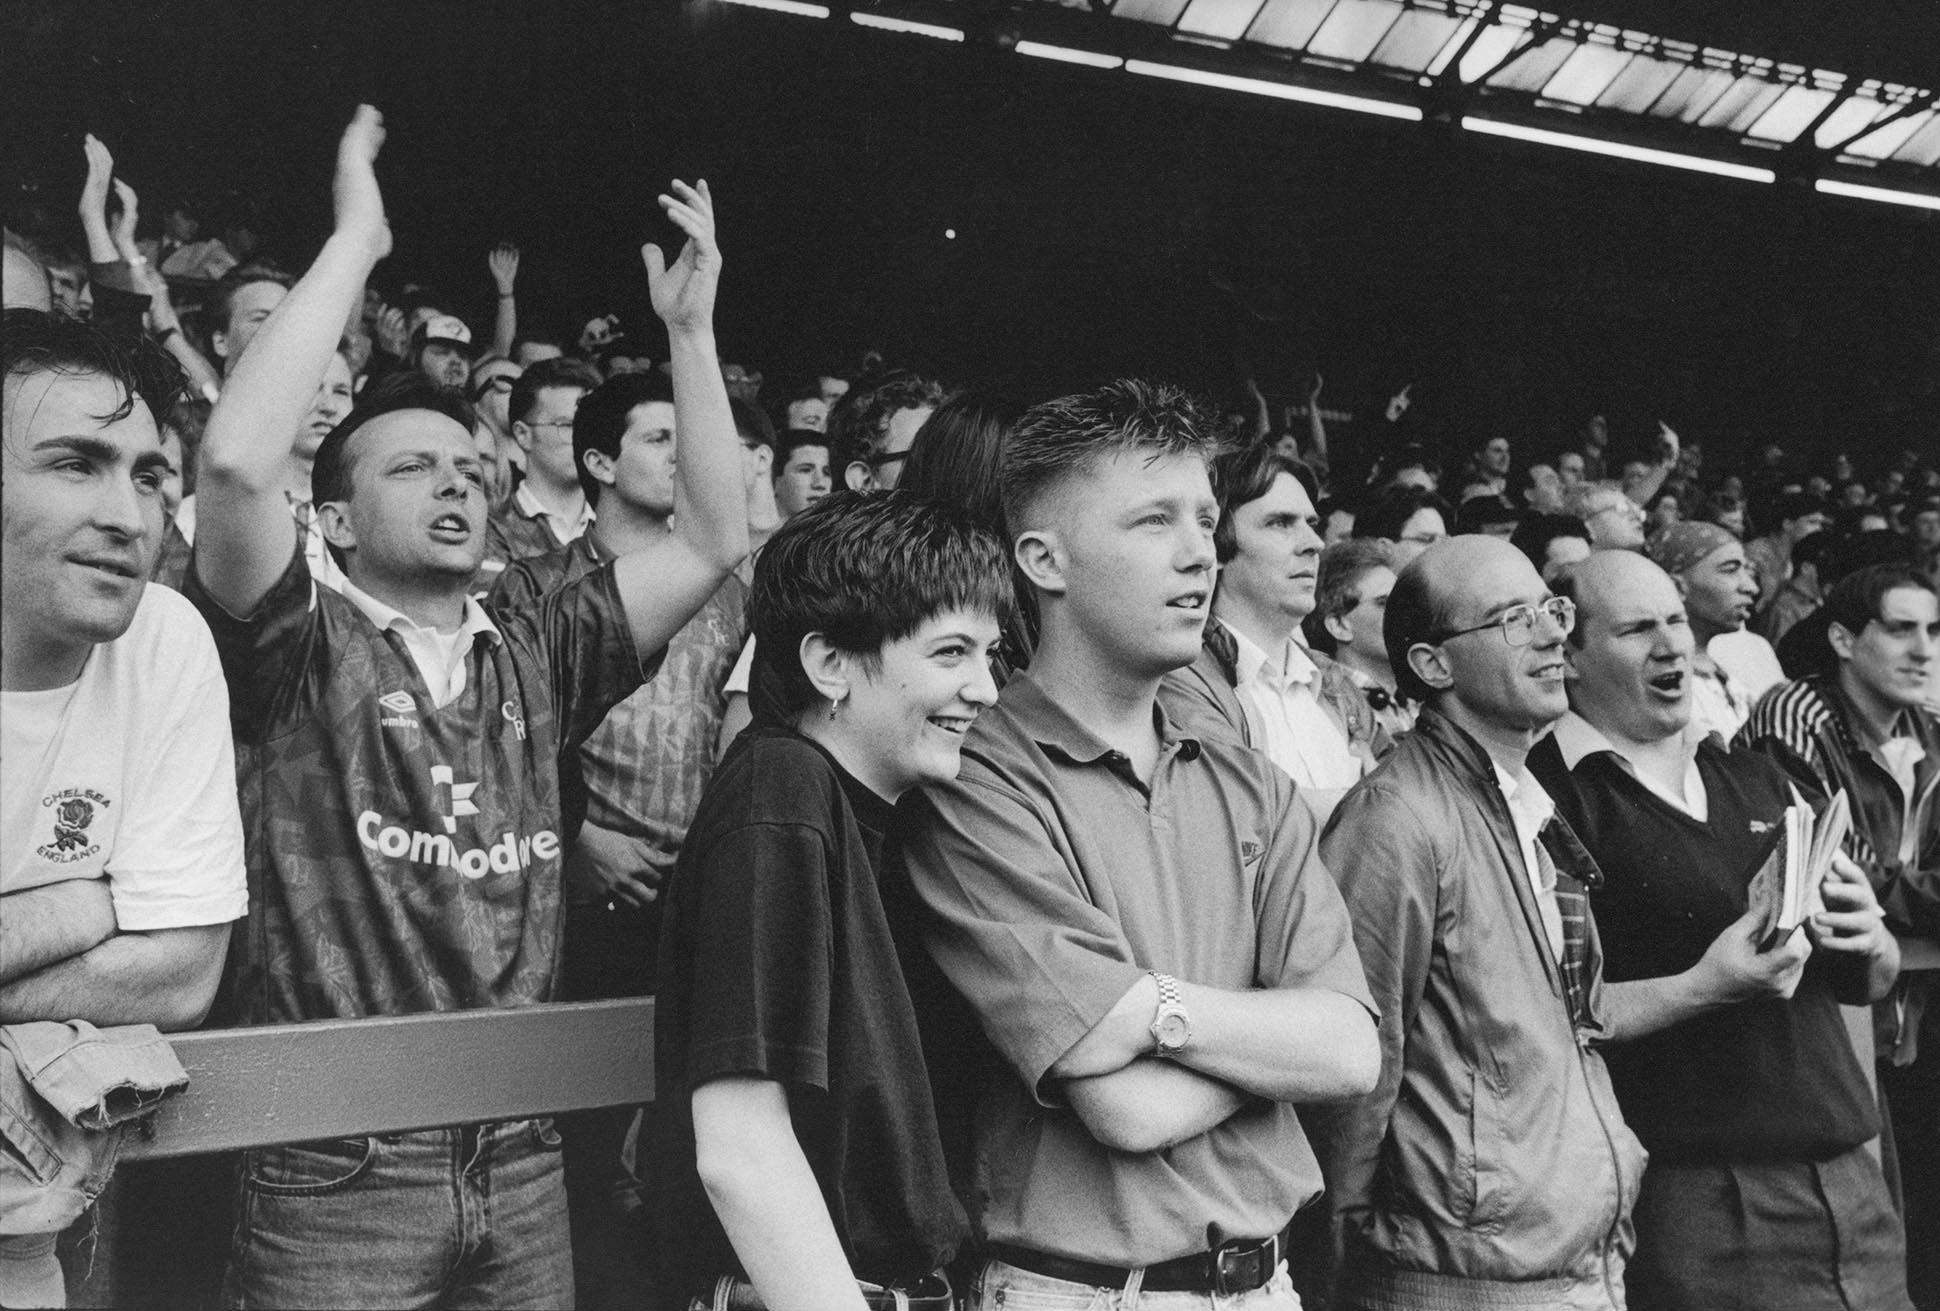 Football casual fans on the stands watching a football match, London, 1980s by John Ingledew